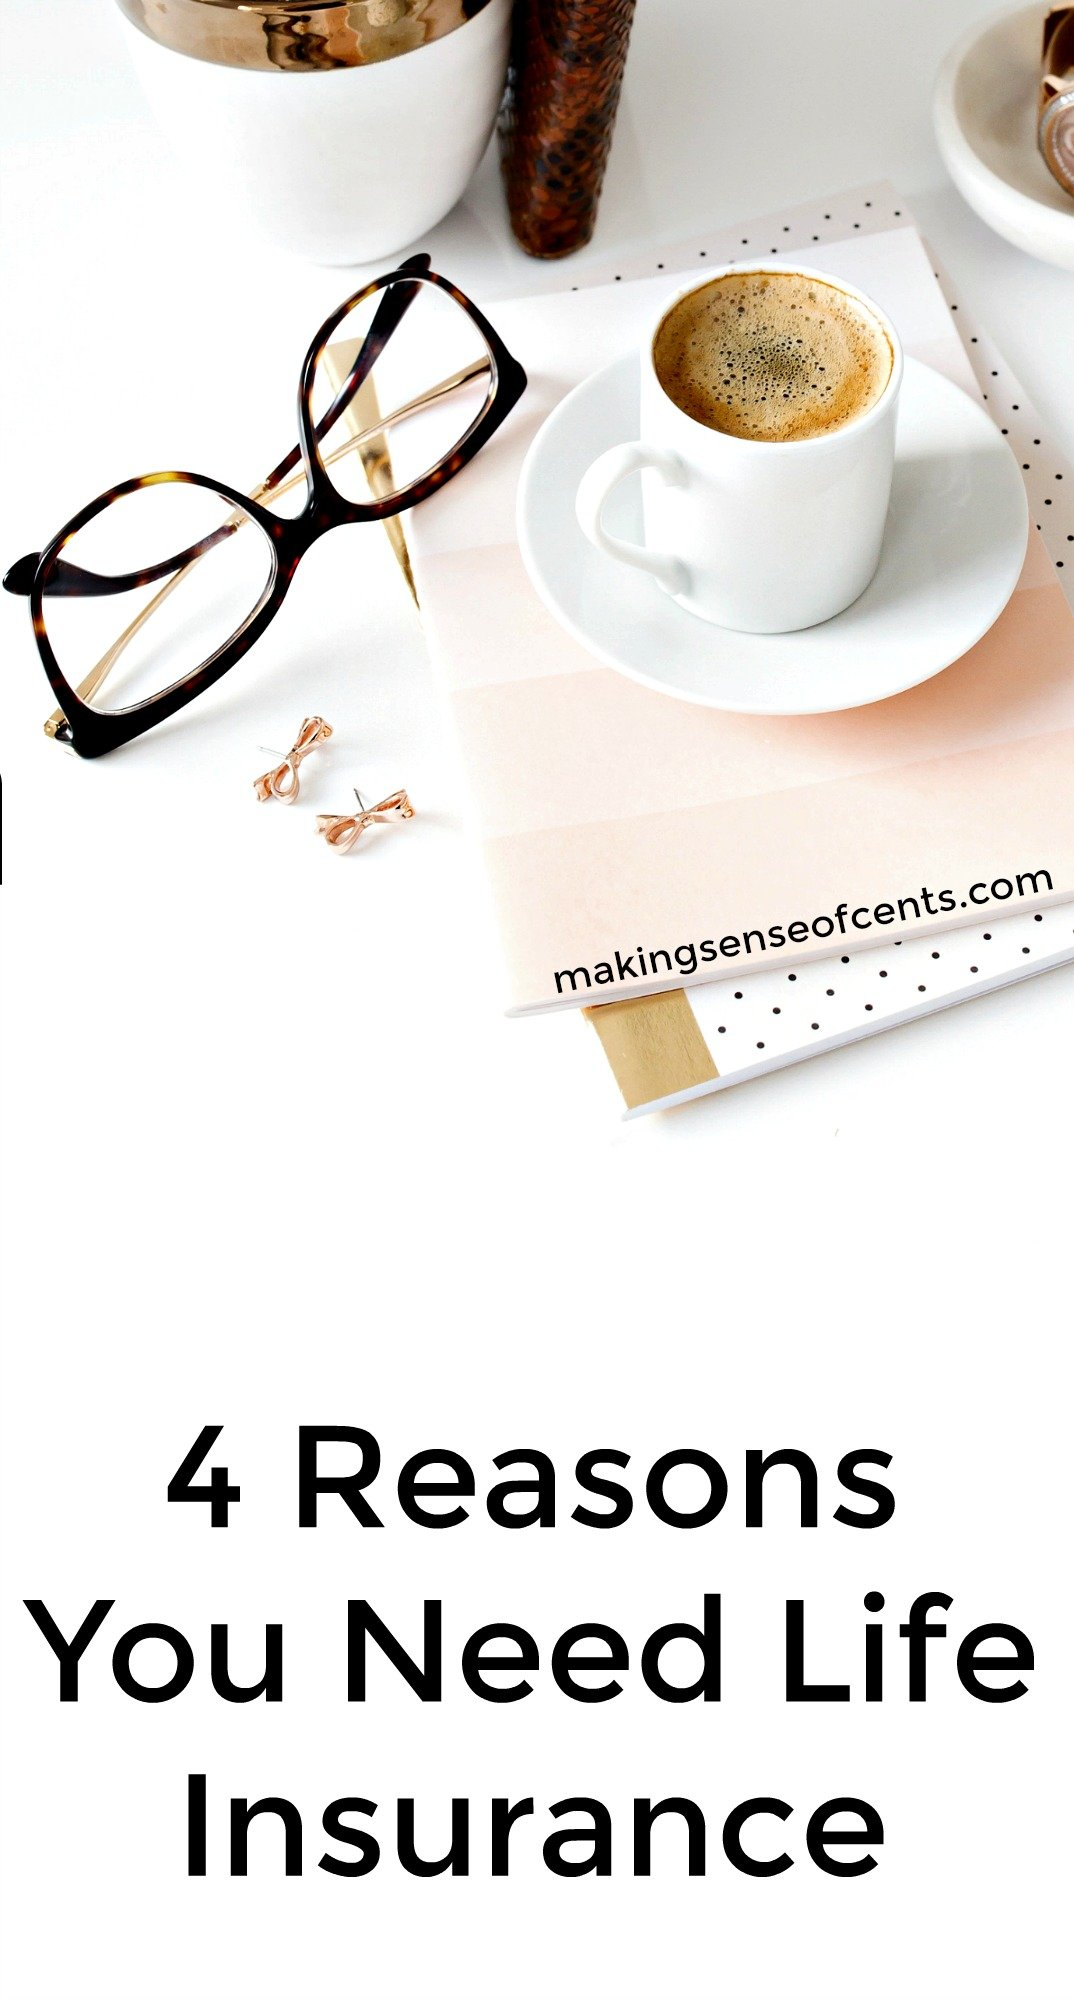 Check out this list of 4 reasons why you need life insurance.